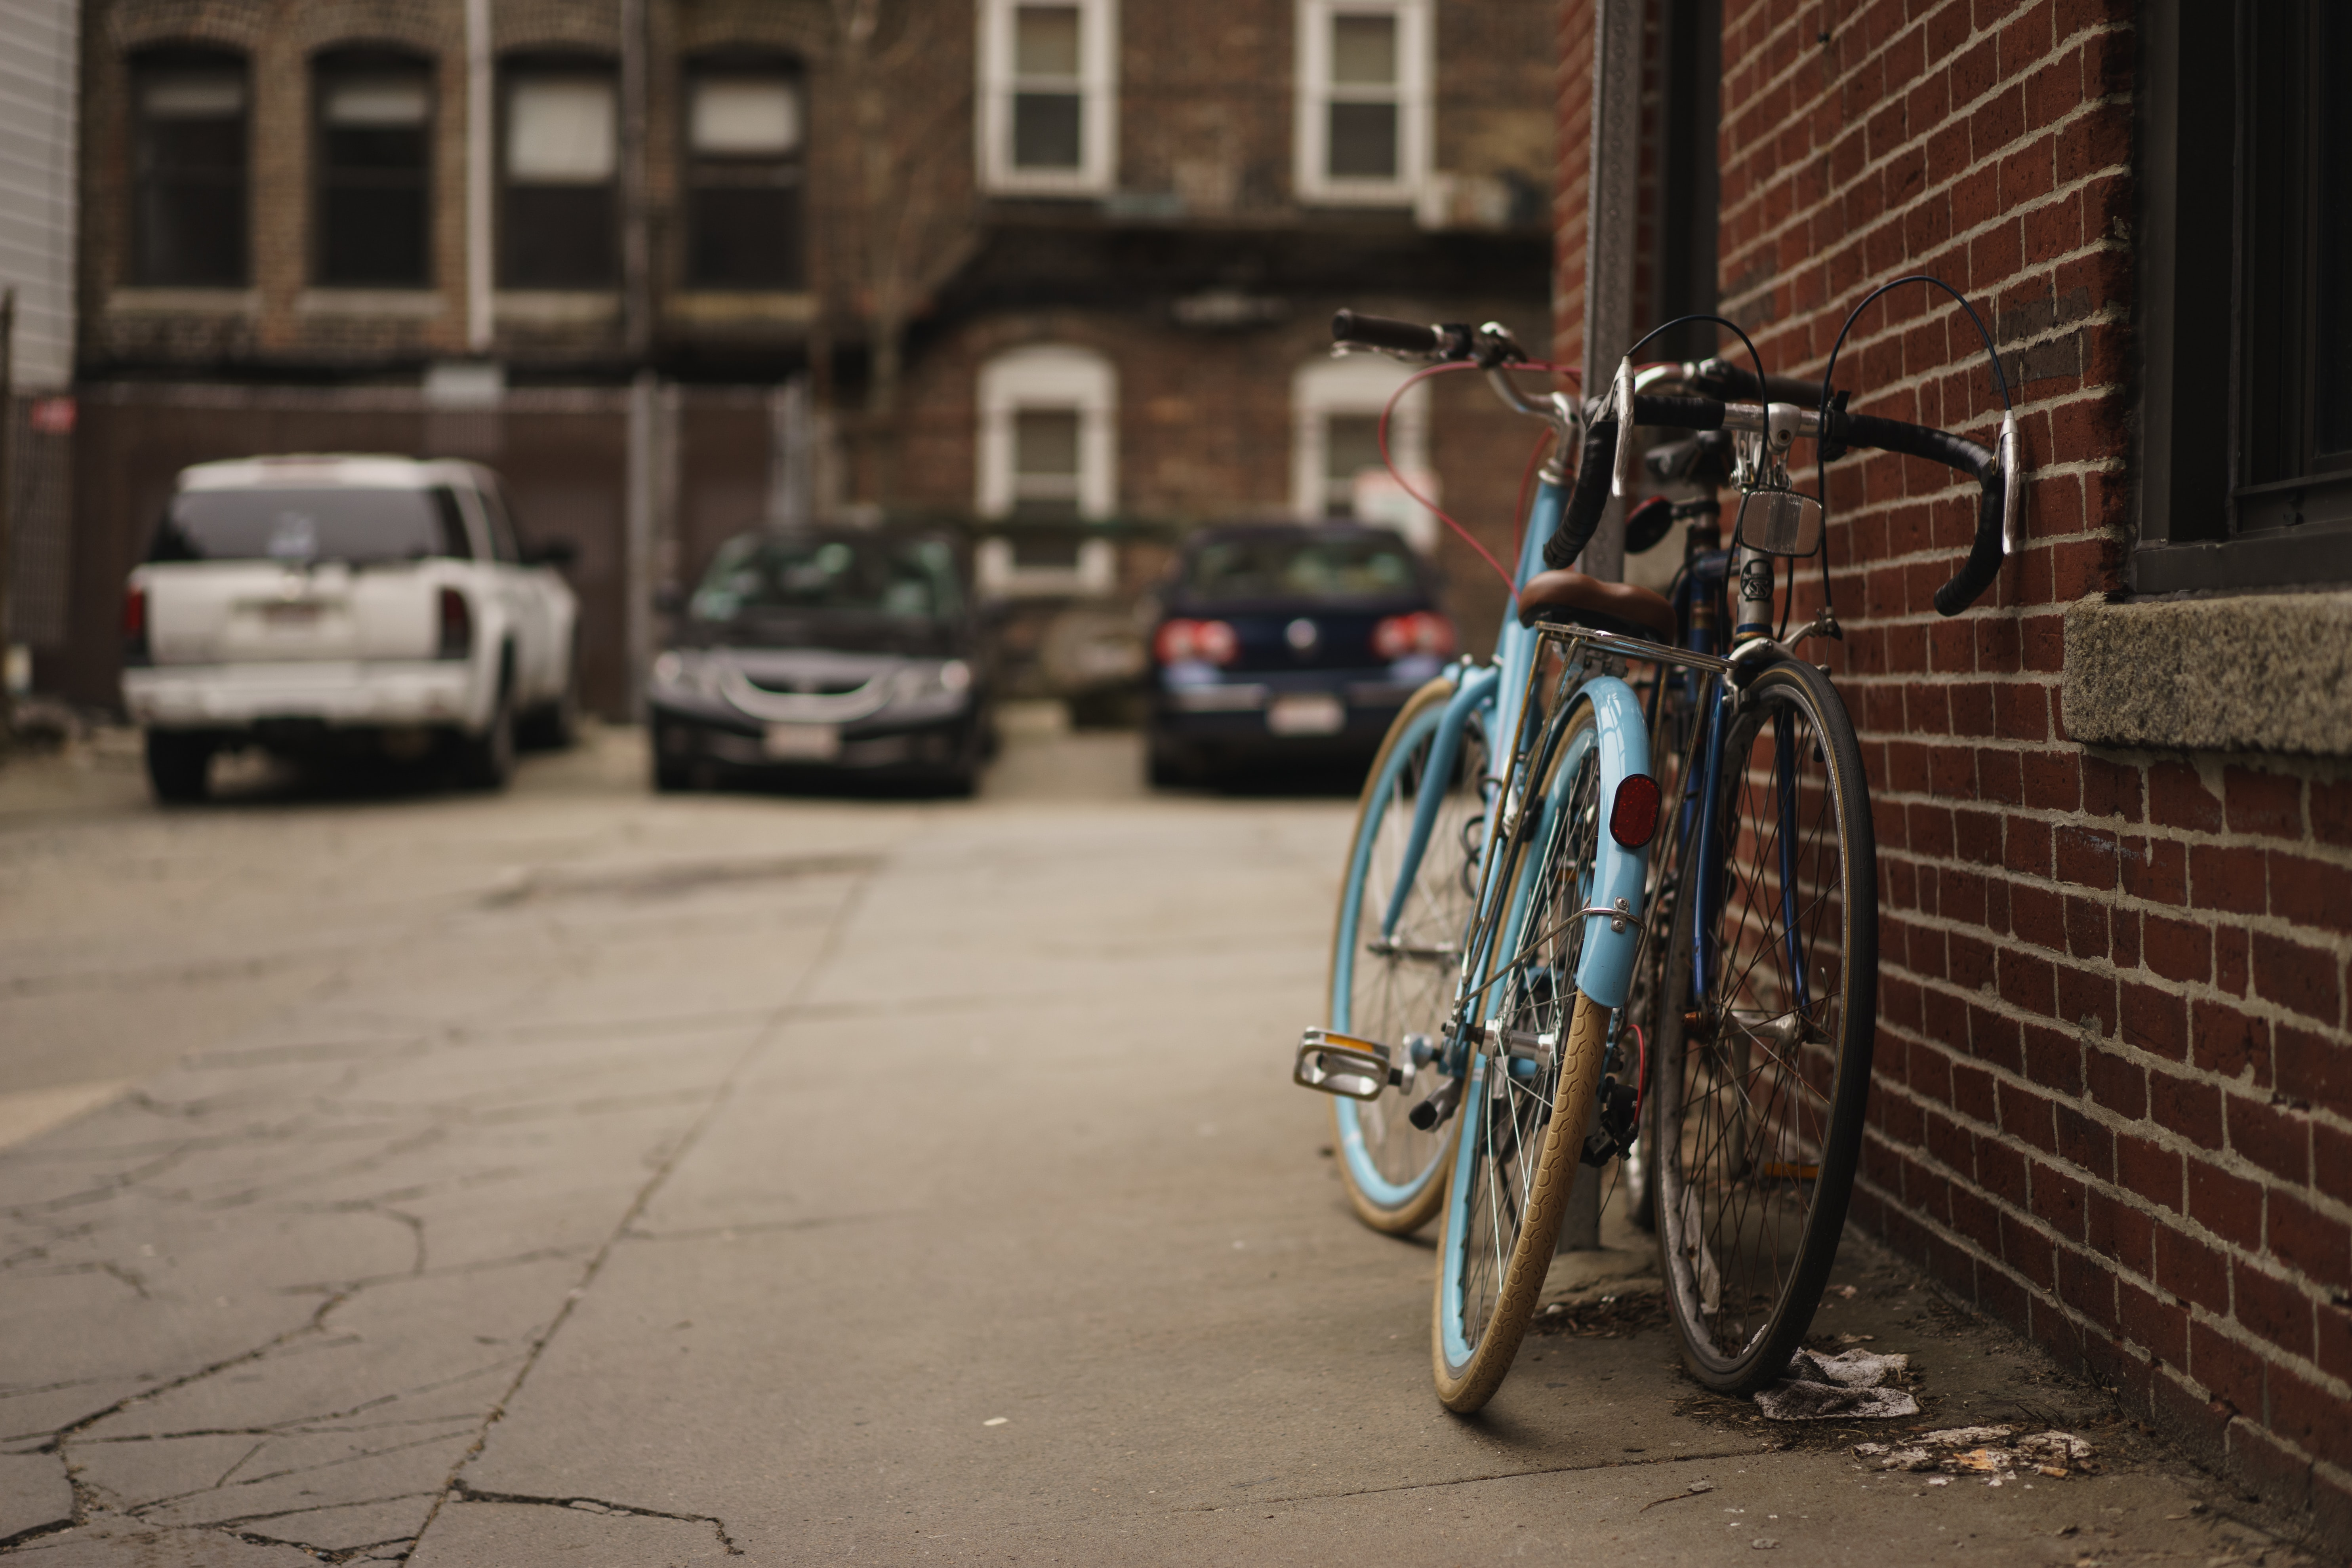 Two bicycles leaning against red brick wall in urban car park, 23 Foster St